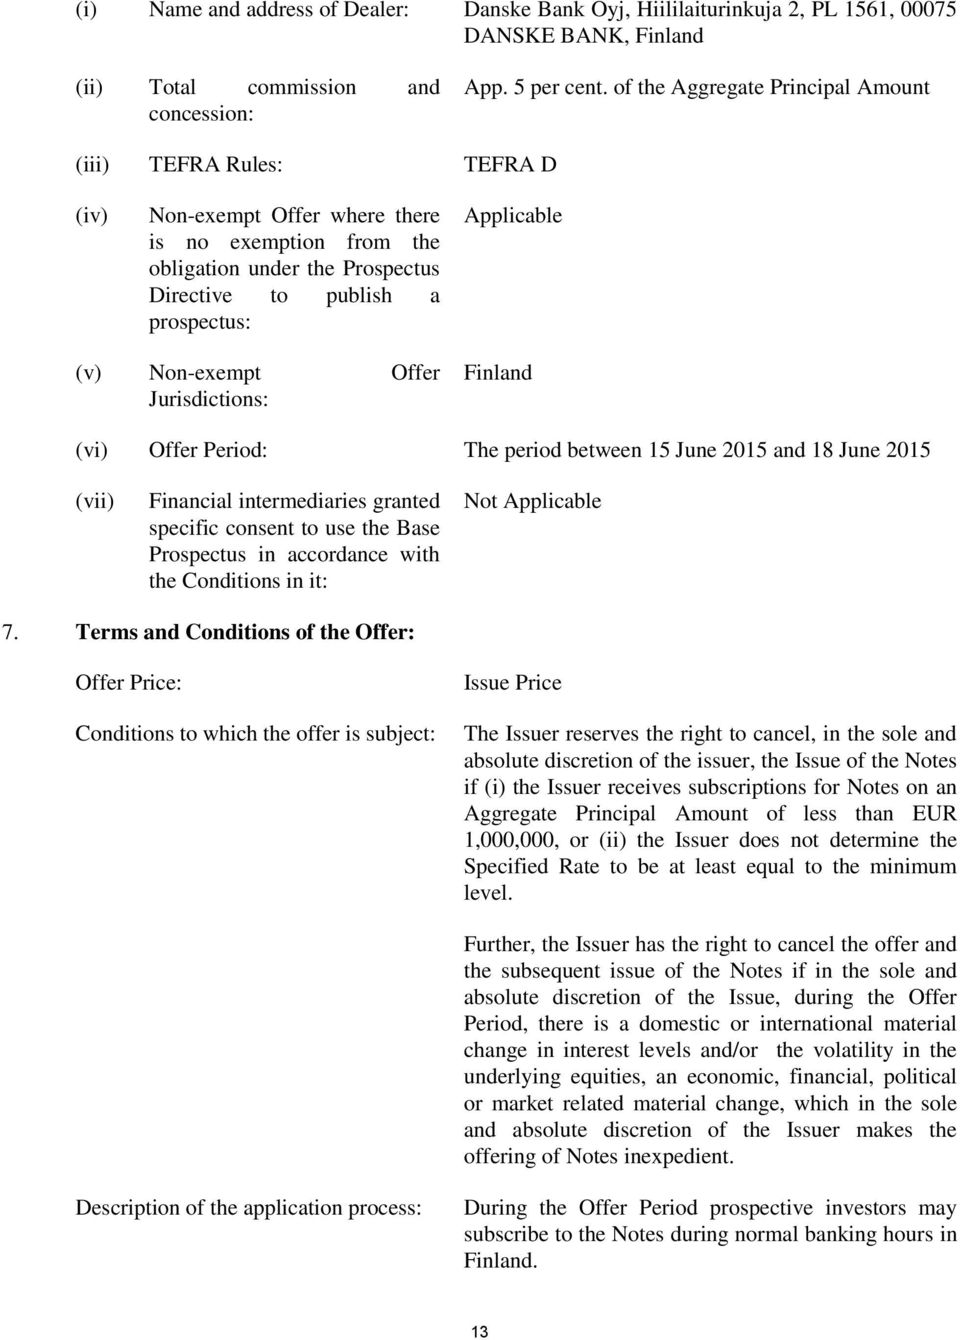 (v) Non-exempt Offer Jurisdictions: Finland (vi) Offer Period: The period between 15 June 2015 and 18 June 2015 (vii) Financial intermediaries granted specific consent to use the Base Prospectus in